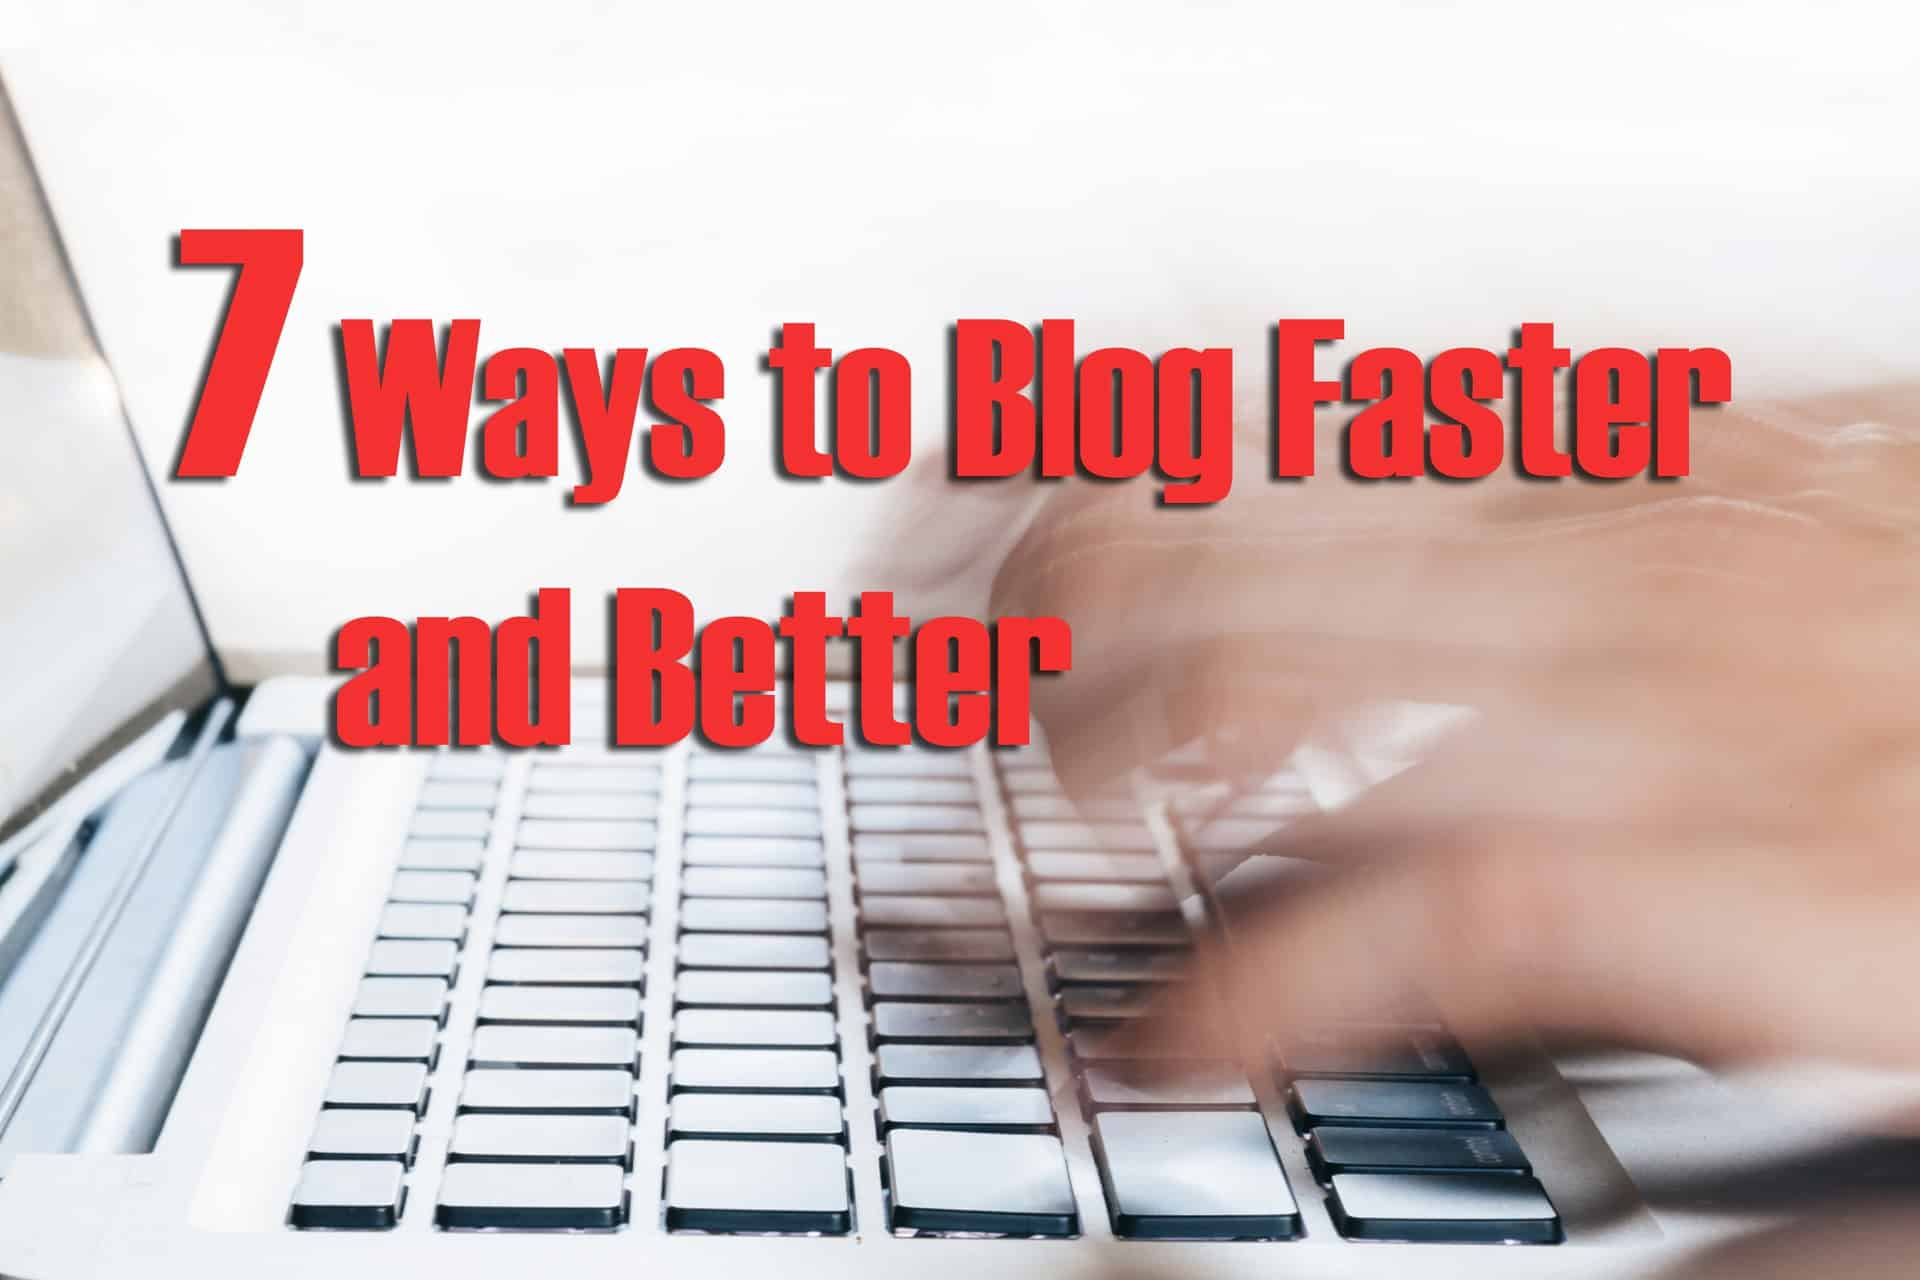 ways to blog faster and better